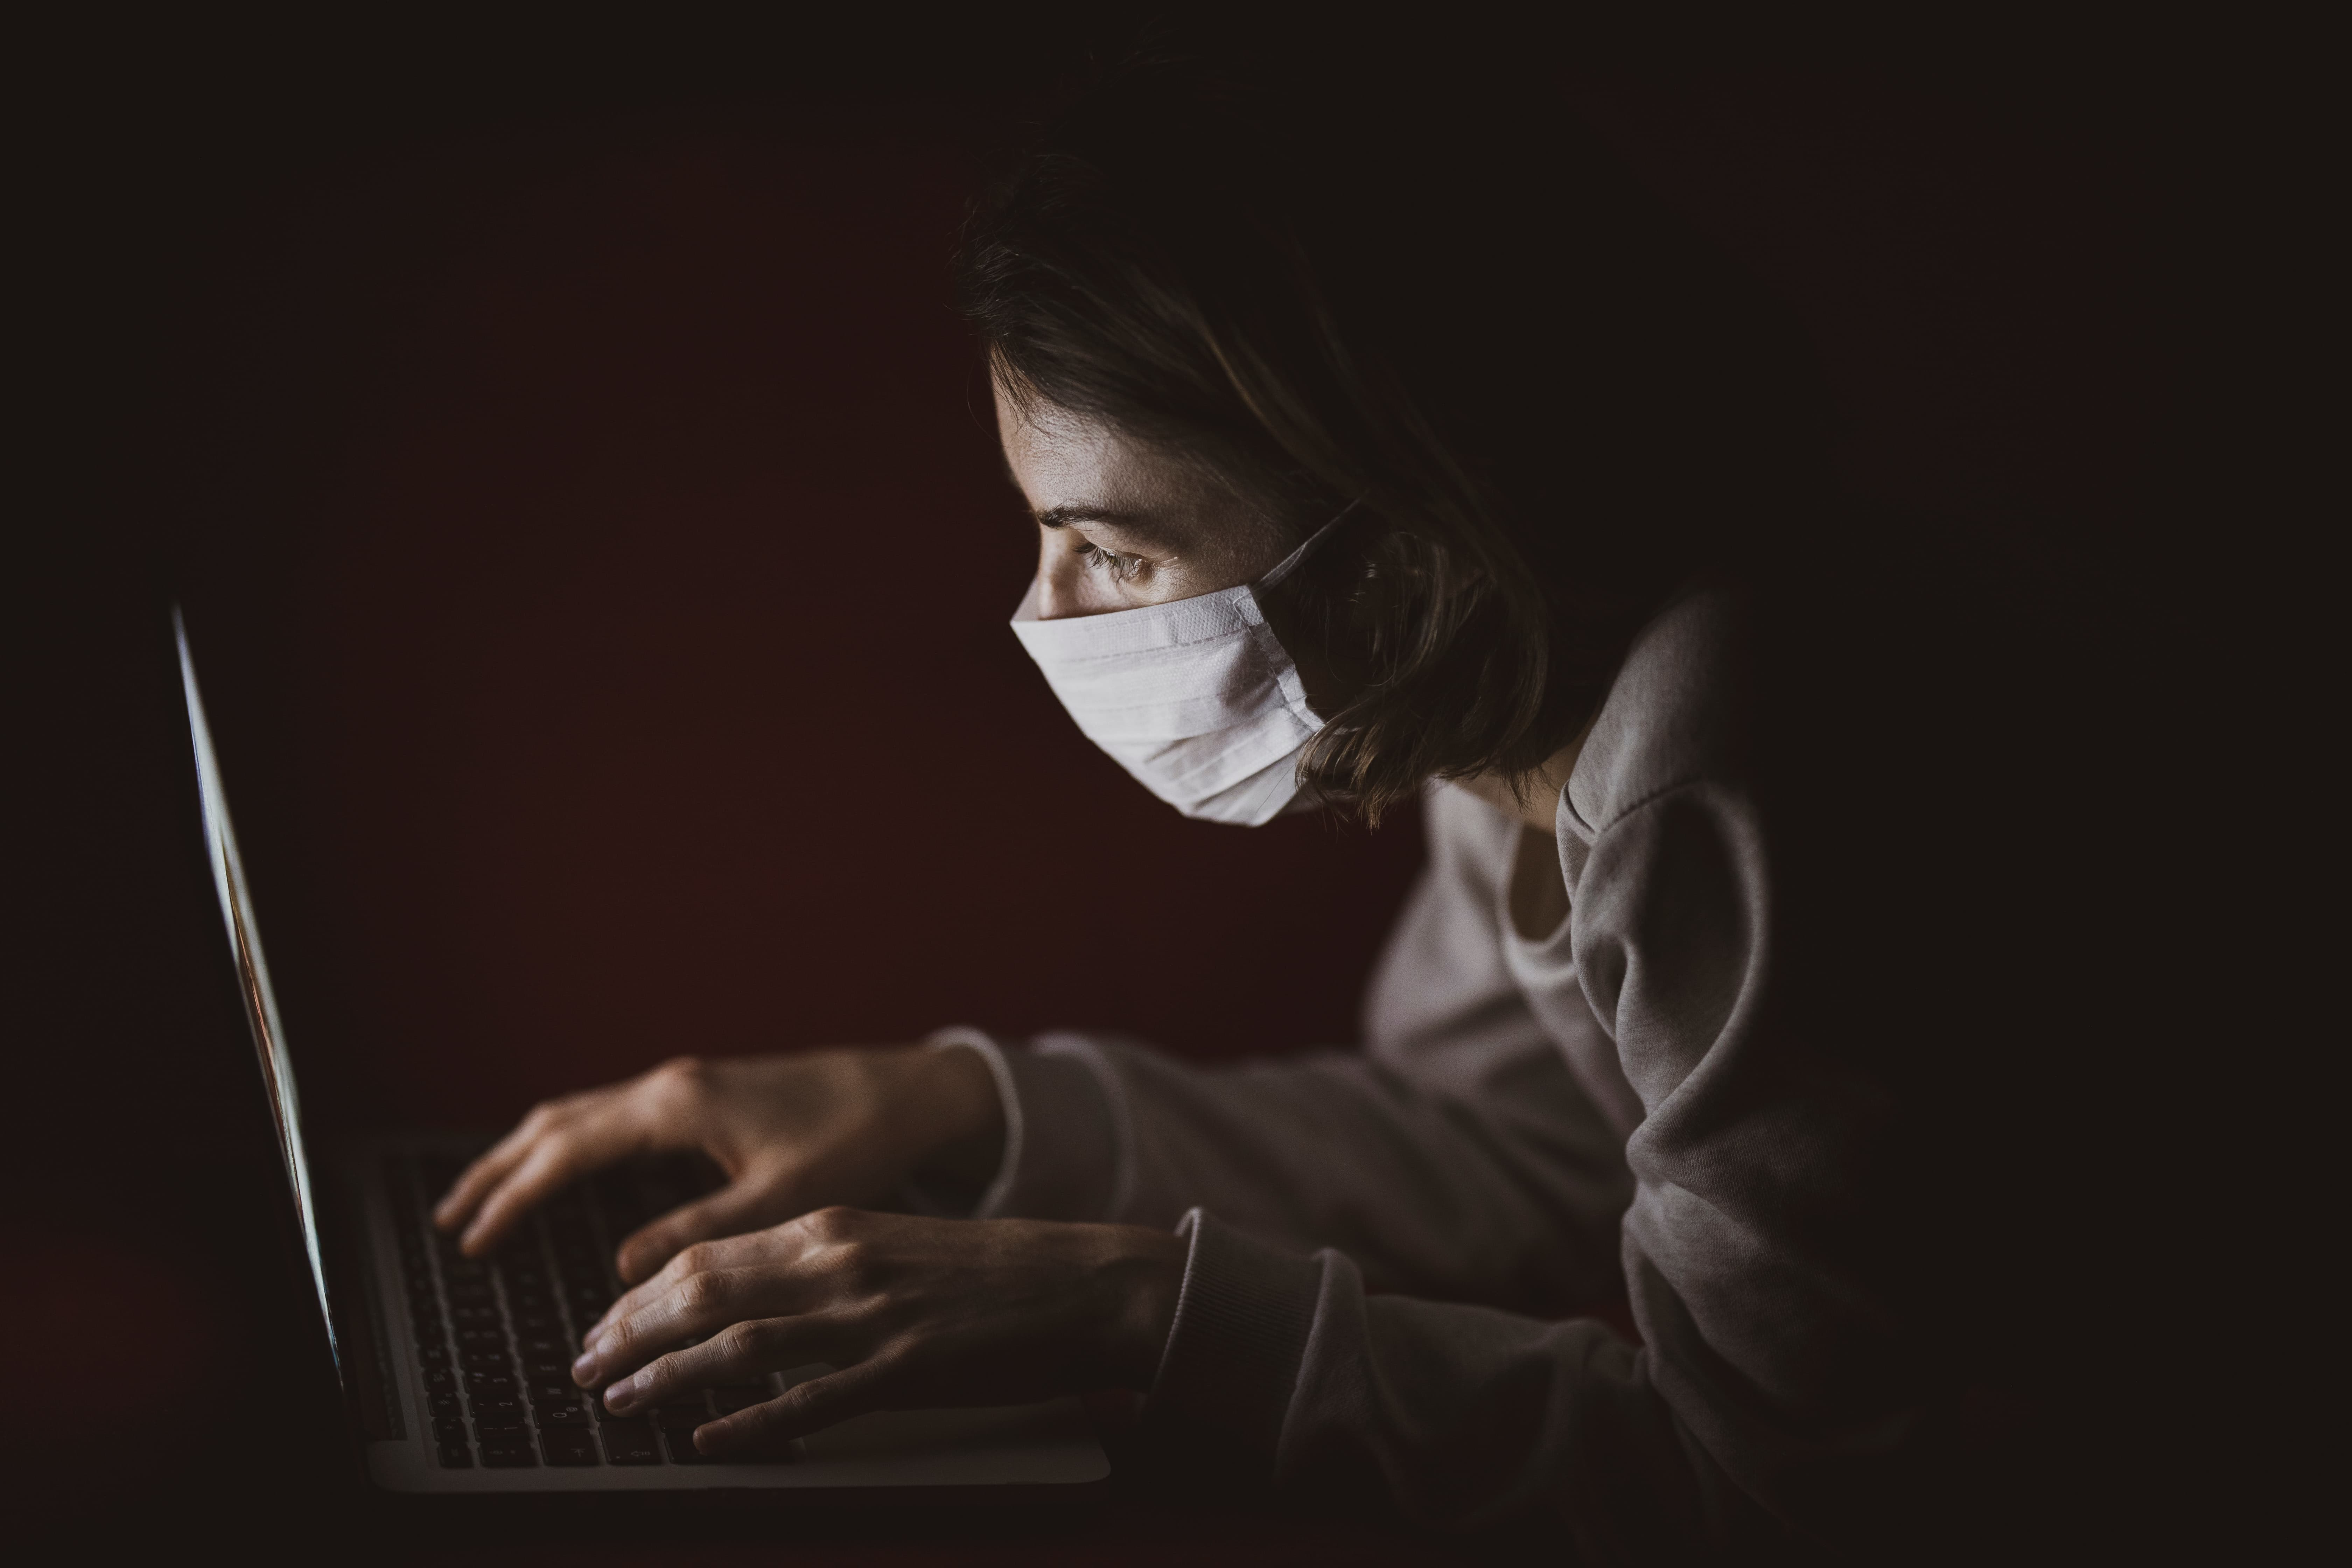 lady in front of laptop wearing mask in a dark room